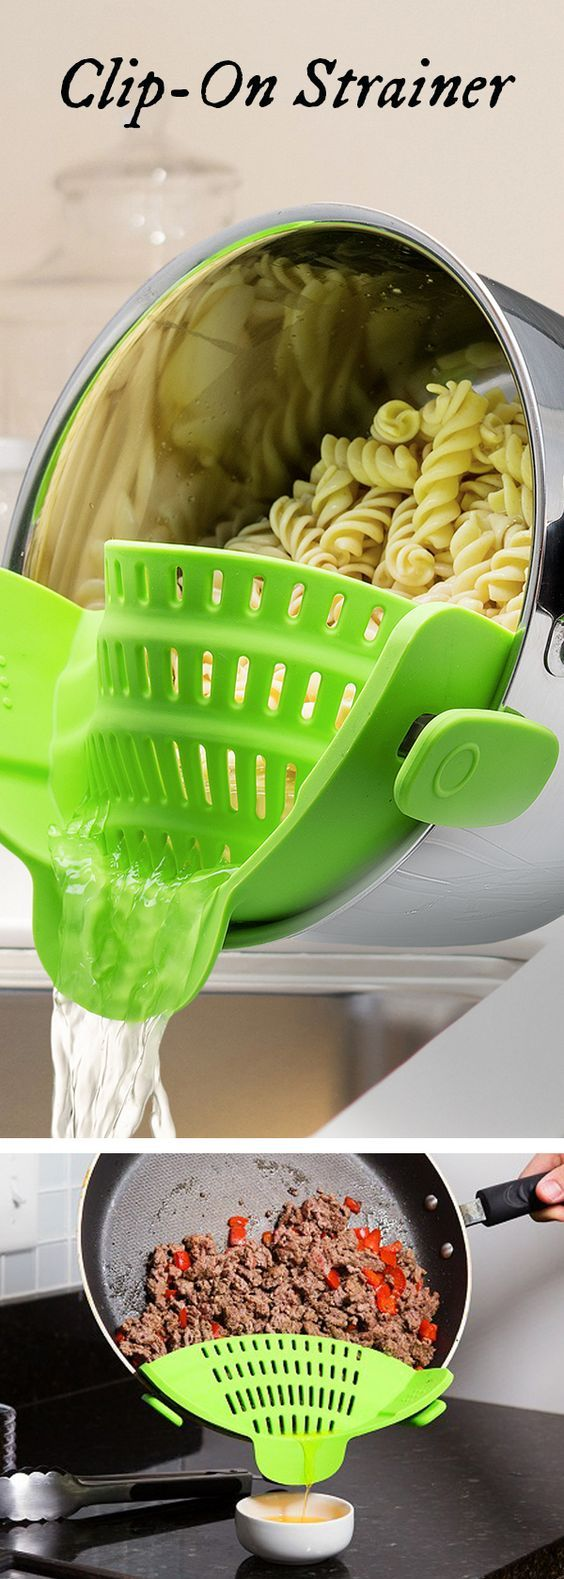 Clip This Silicone Strainer Right On The Pot To Drain Without Needing To Transfer Your Food Its Low Profile Stores Easily When You Gadget Cuisine Gadgets A Domicile Et Ustensile Cuisine